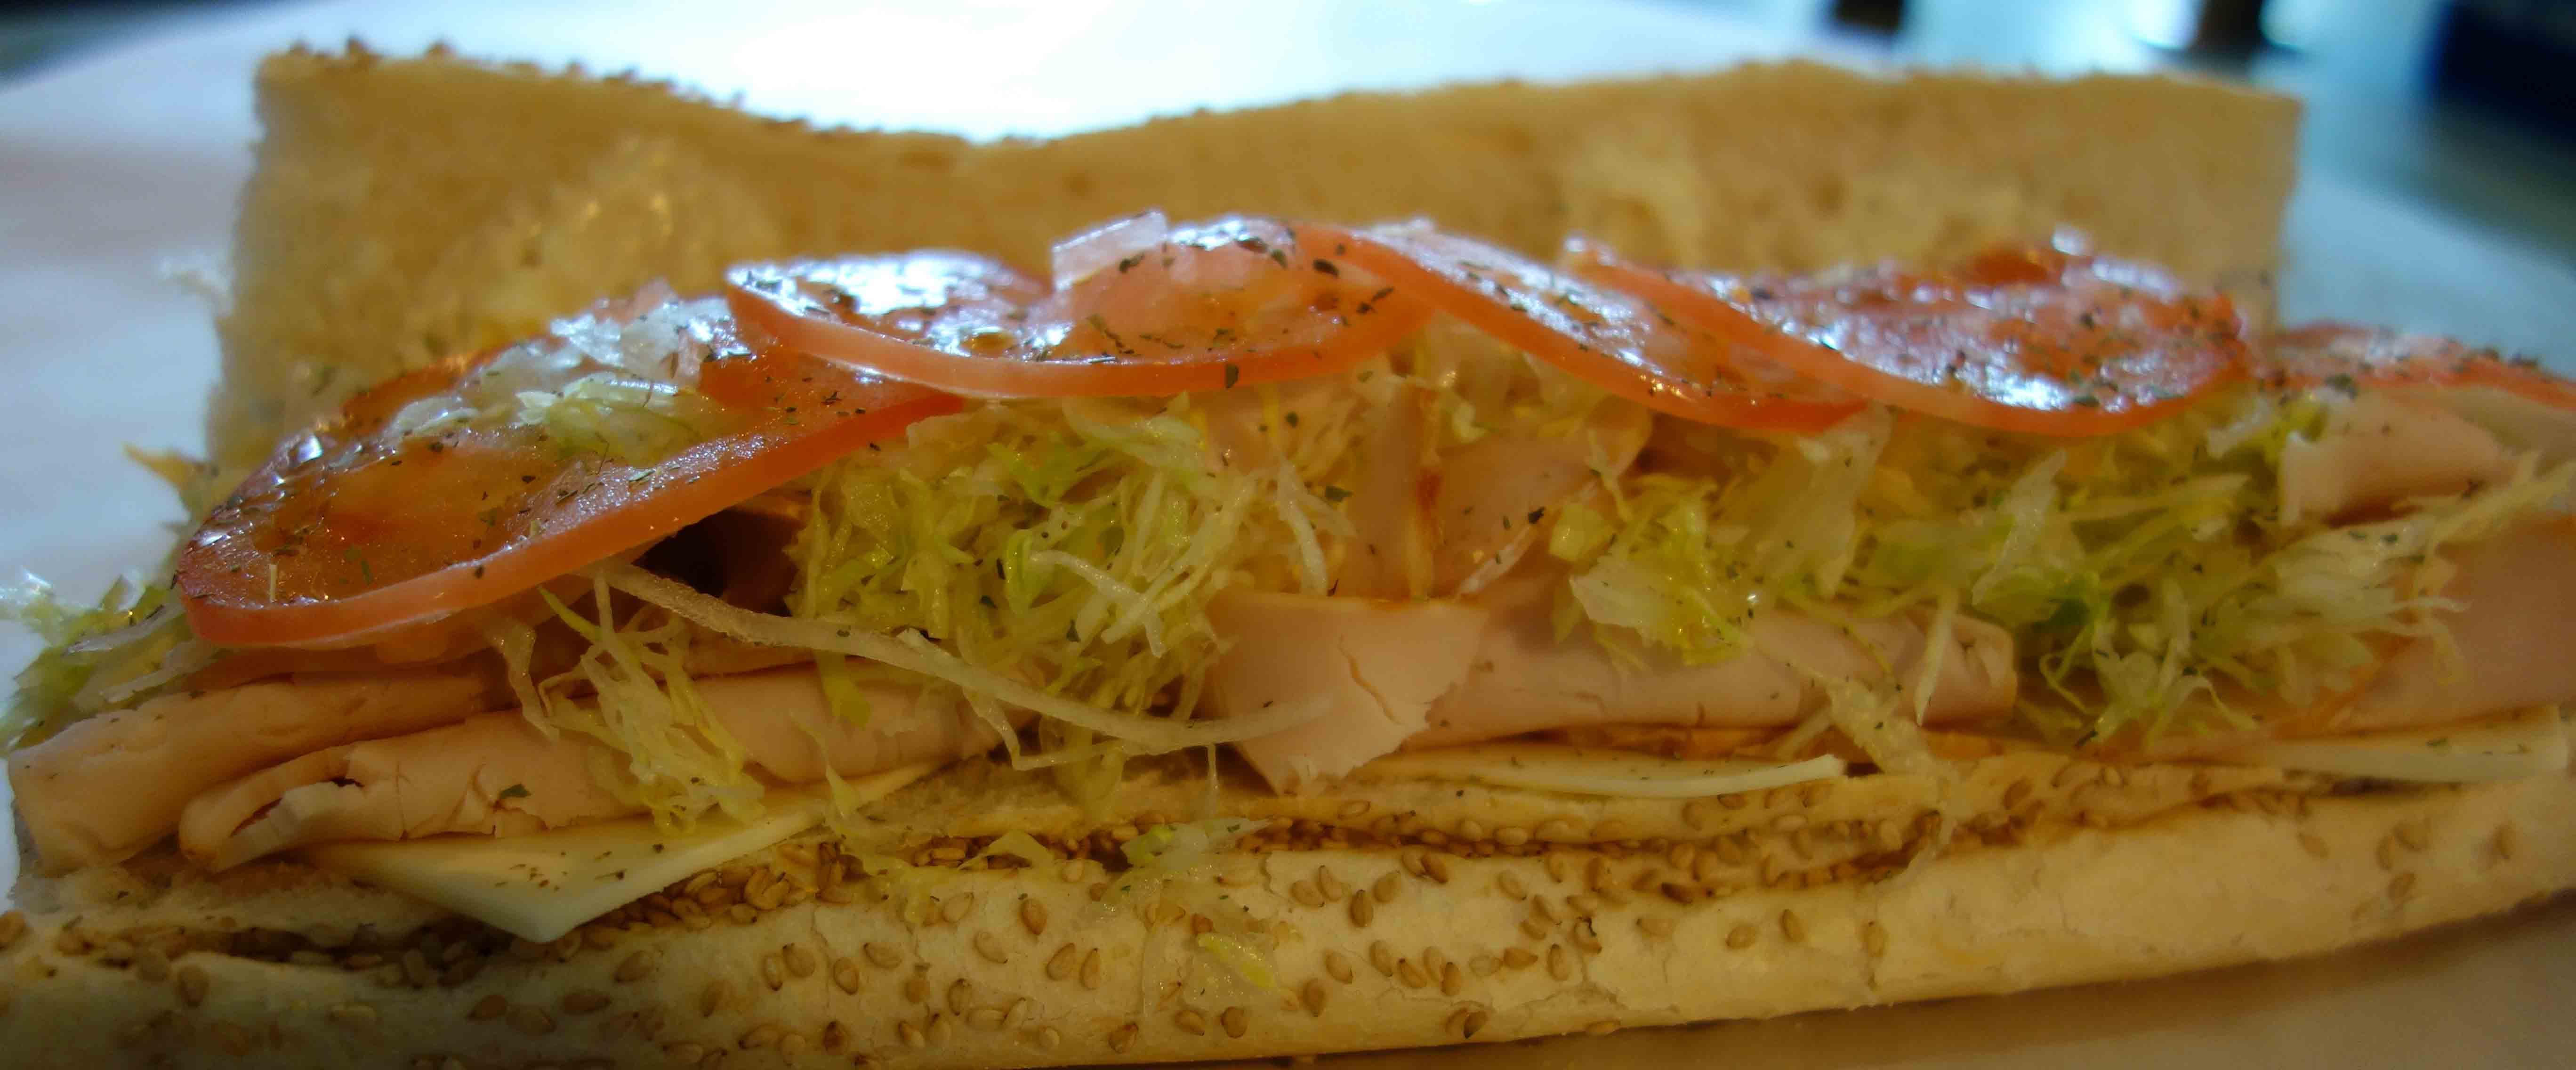 Turkey Sandwich 01